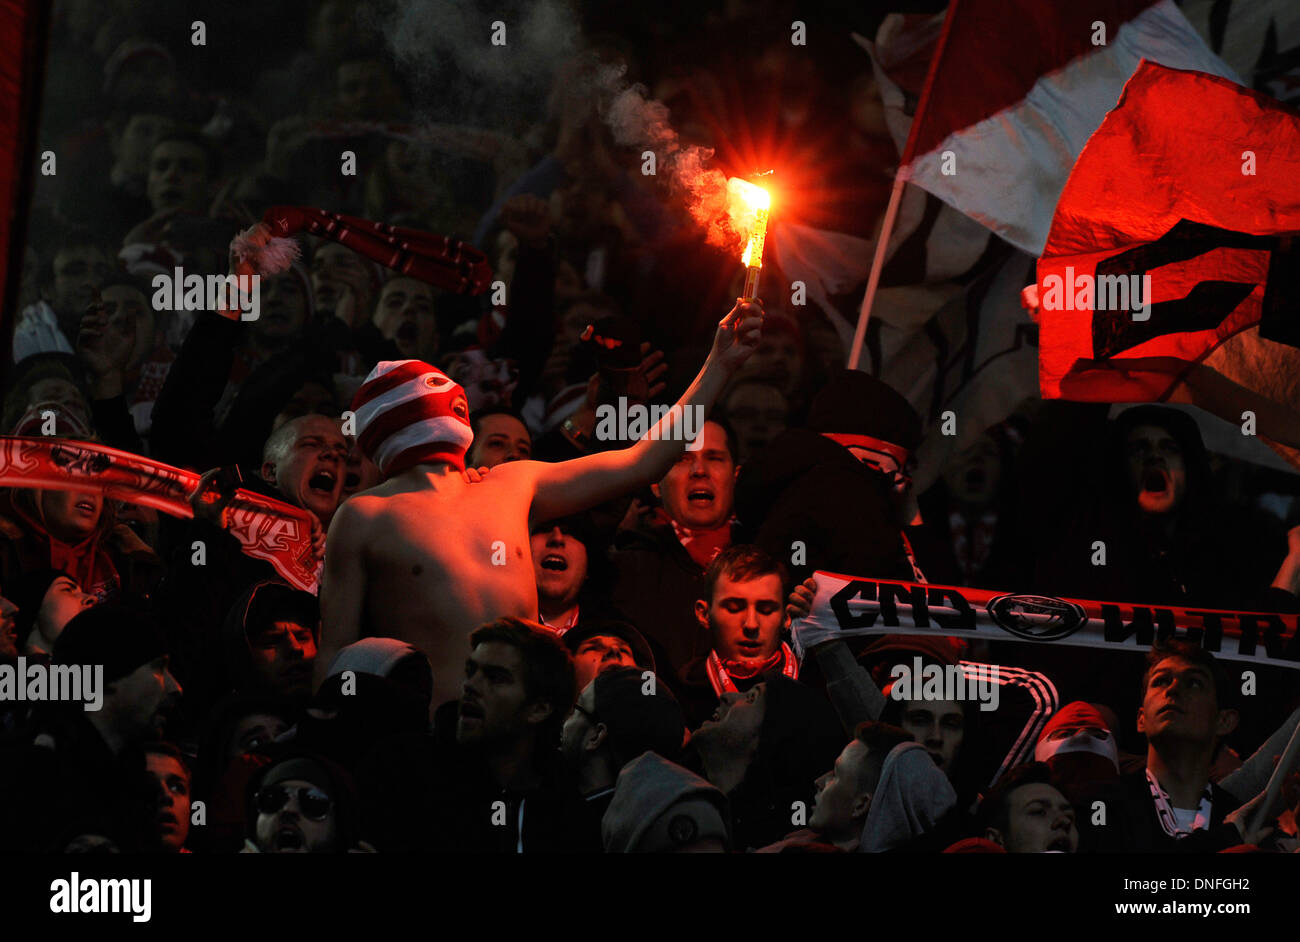 Supporters of German Football Bundesliga Club FC Köln (Cologne) celebrate their team burning flares Stock Photo